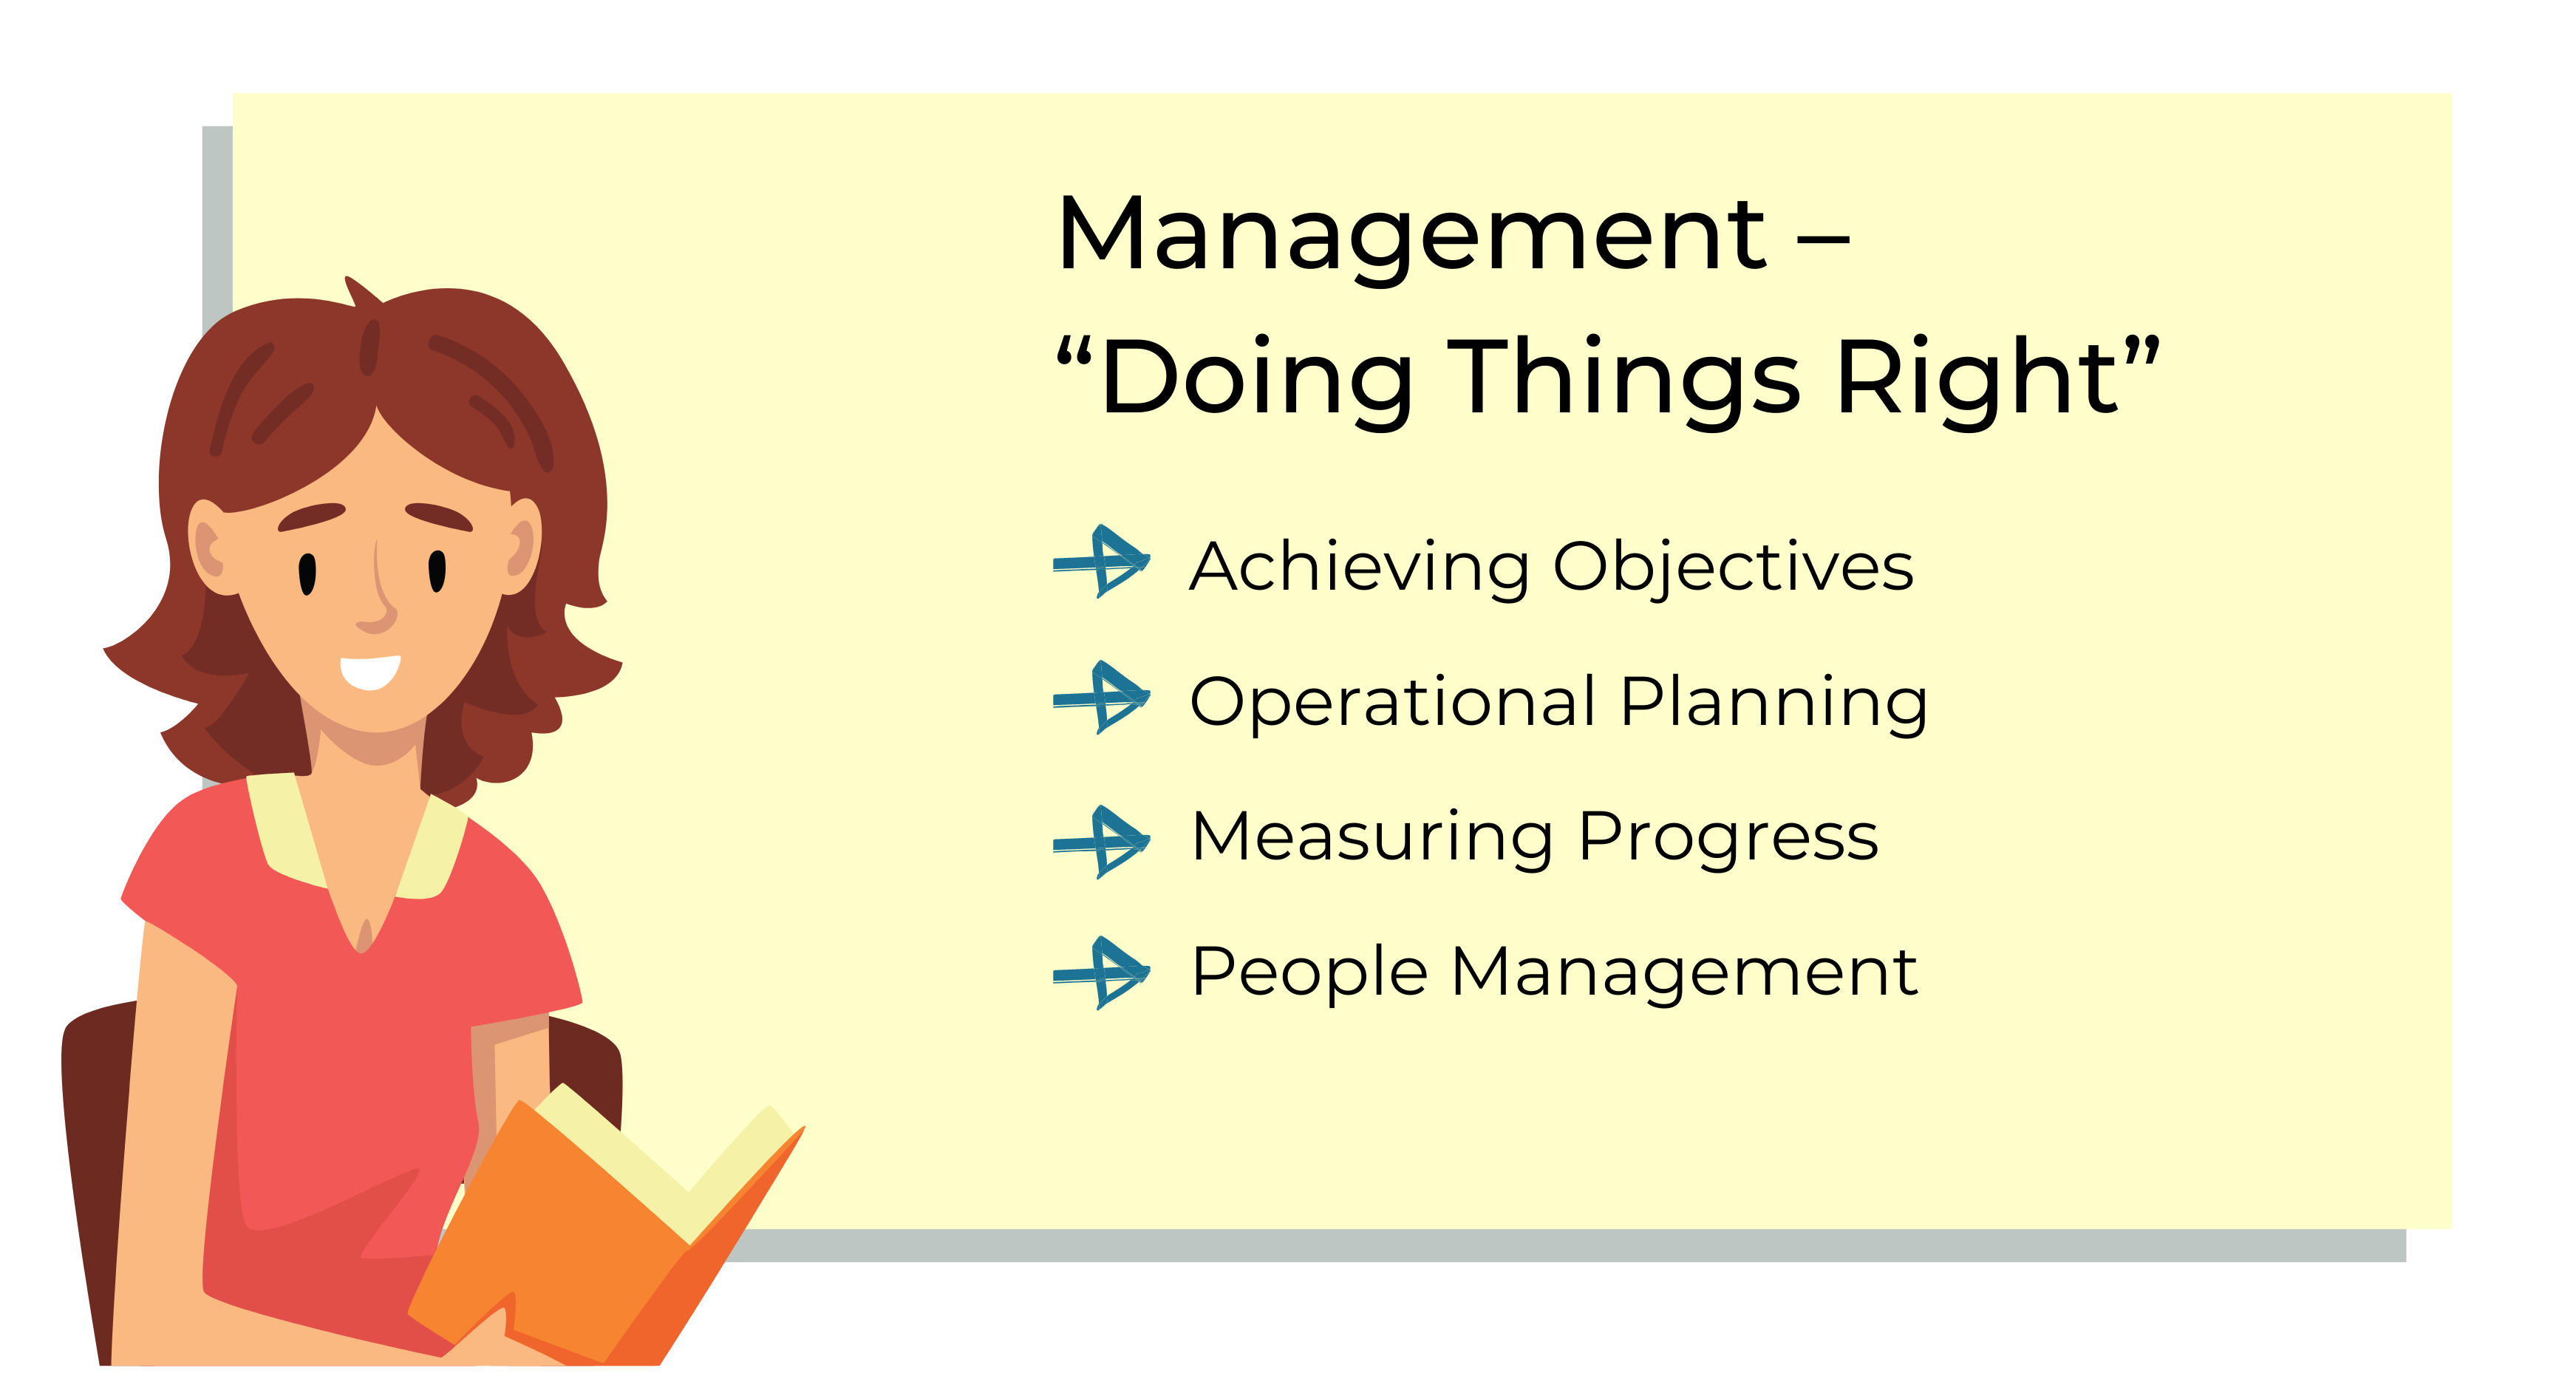 management - doing the right thing involves achieving objectives, operational planning, measuring progress and people management